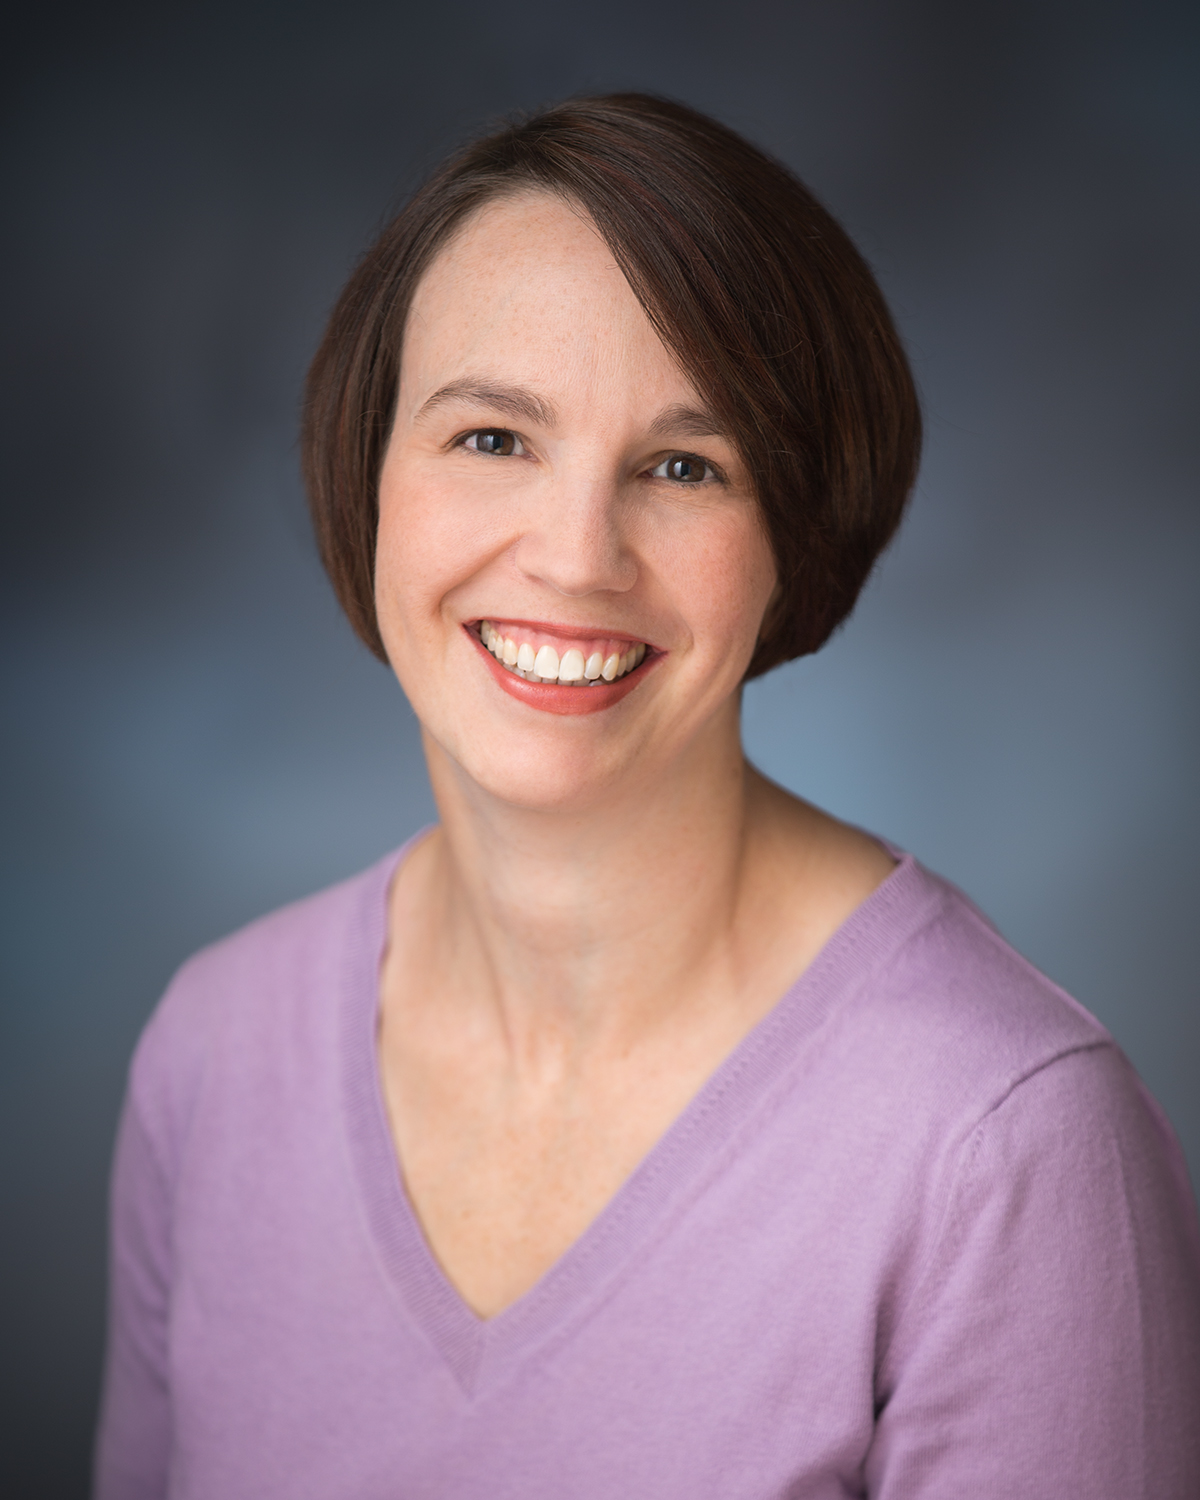 Michele T. Quinn, MD, MHSc, MS - Physician and Surgeon in Oregon City, OR